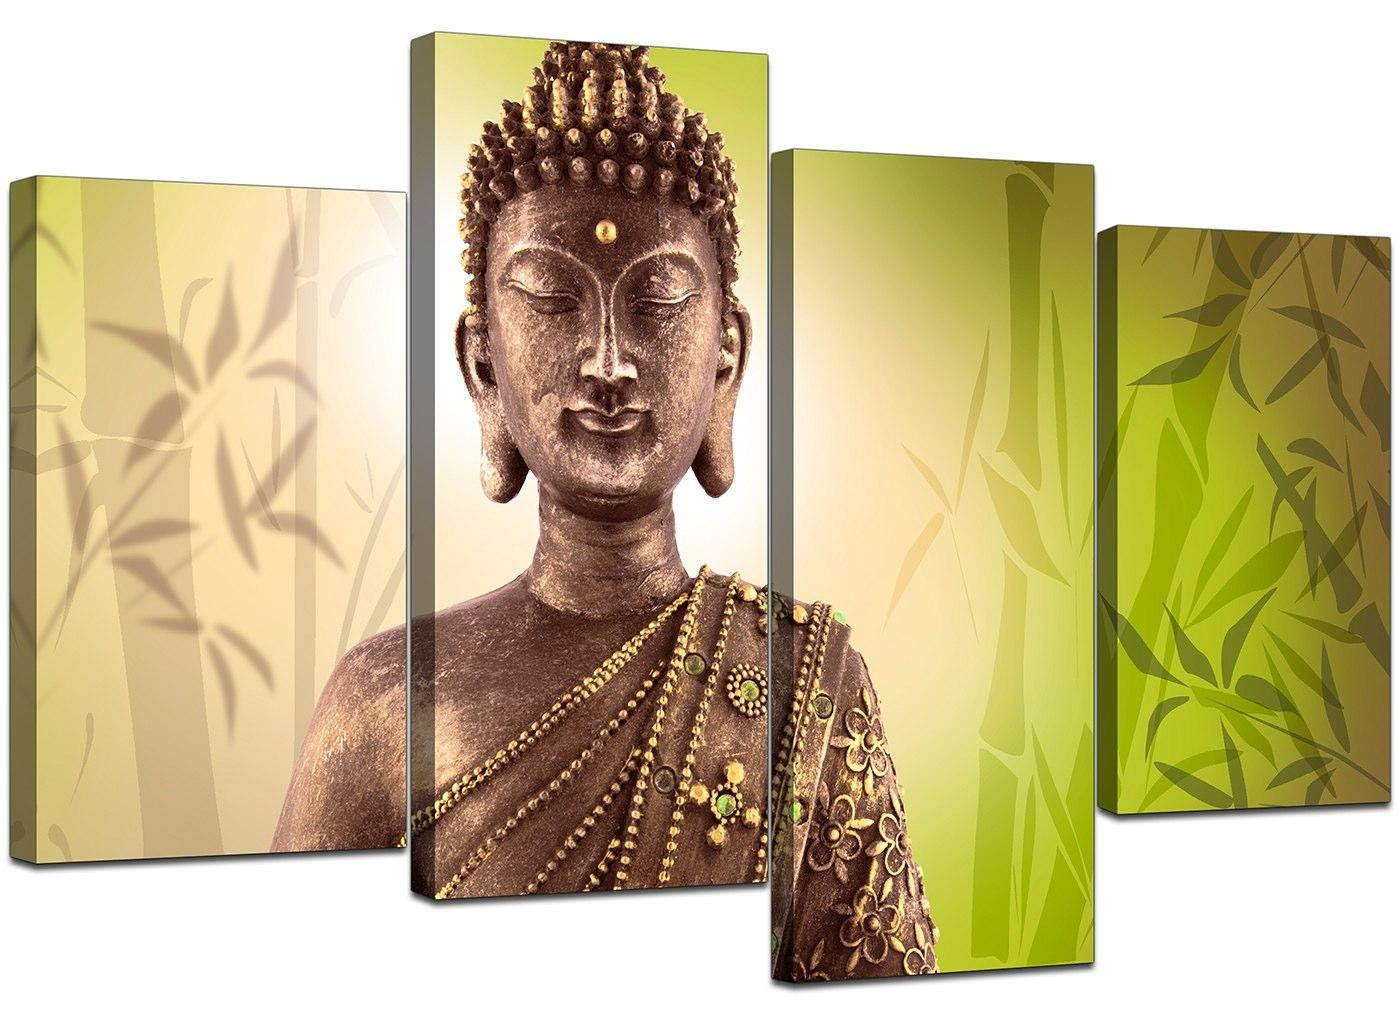 Canvas Art Of Buddha In Green For Your Living Room With Regard To Large Buddha Wall Art (View 6 of 20)